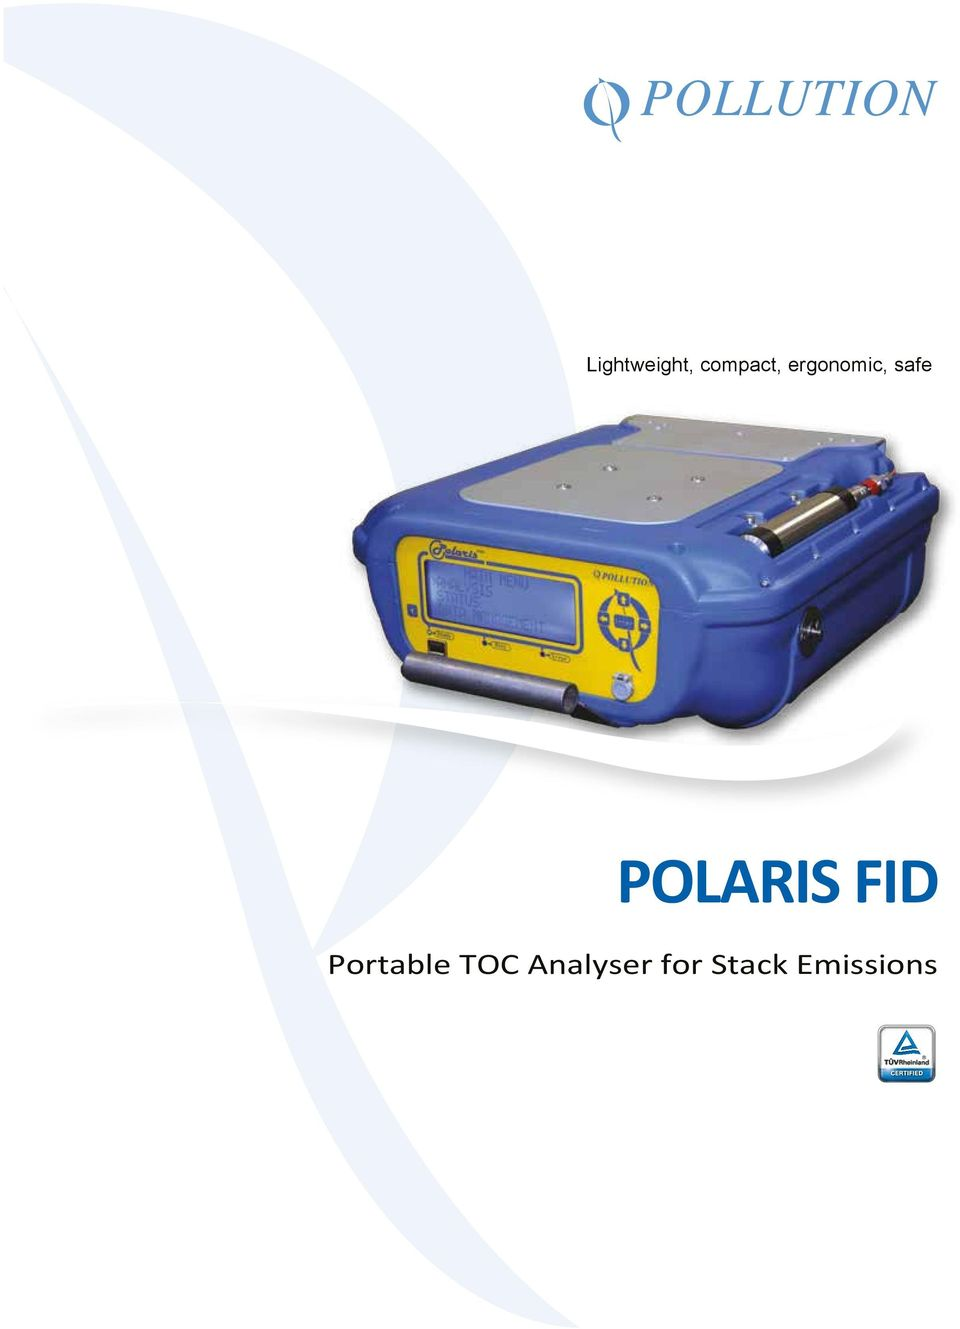 POLARIS FID Portable